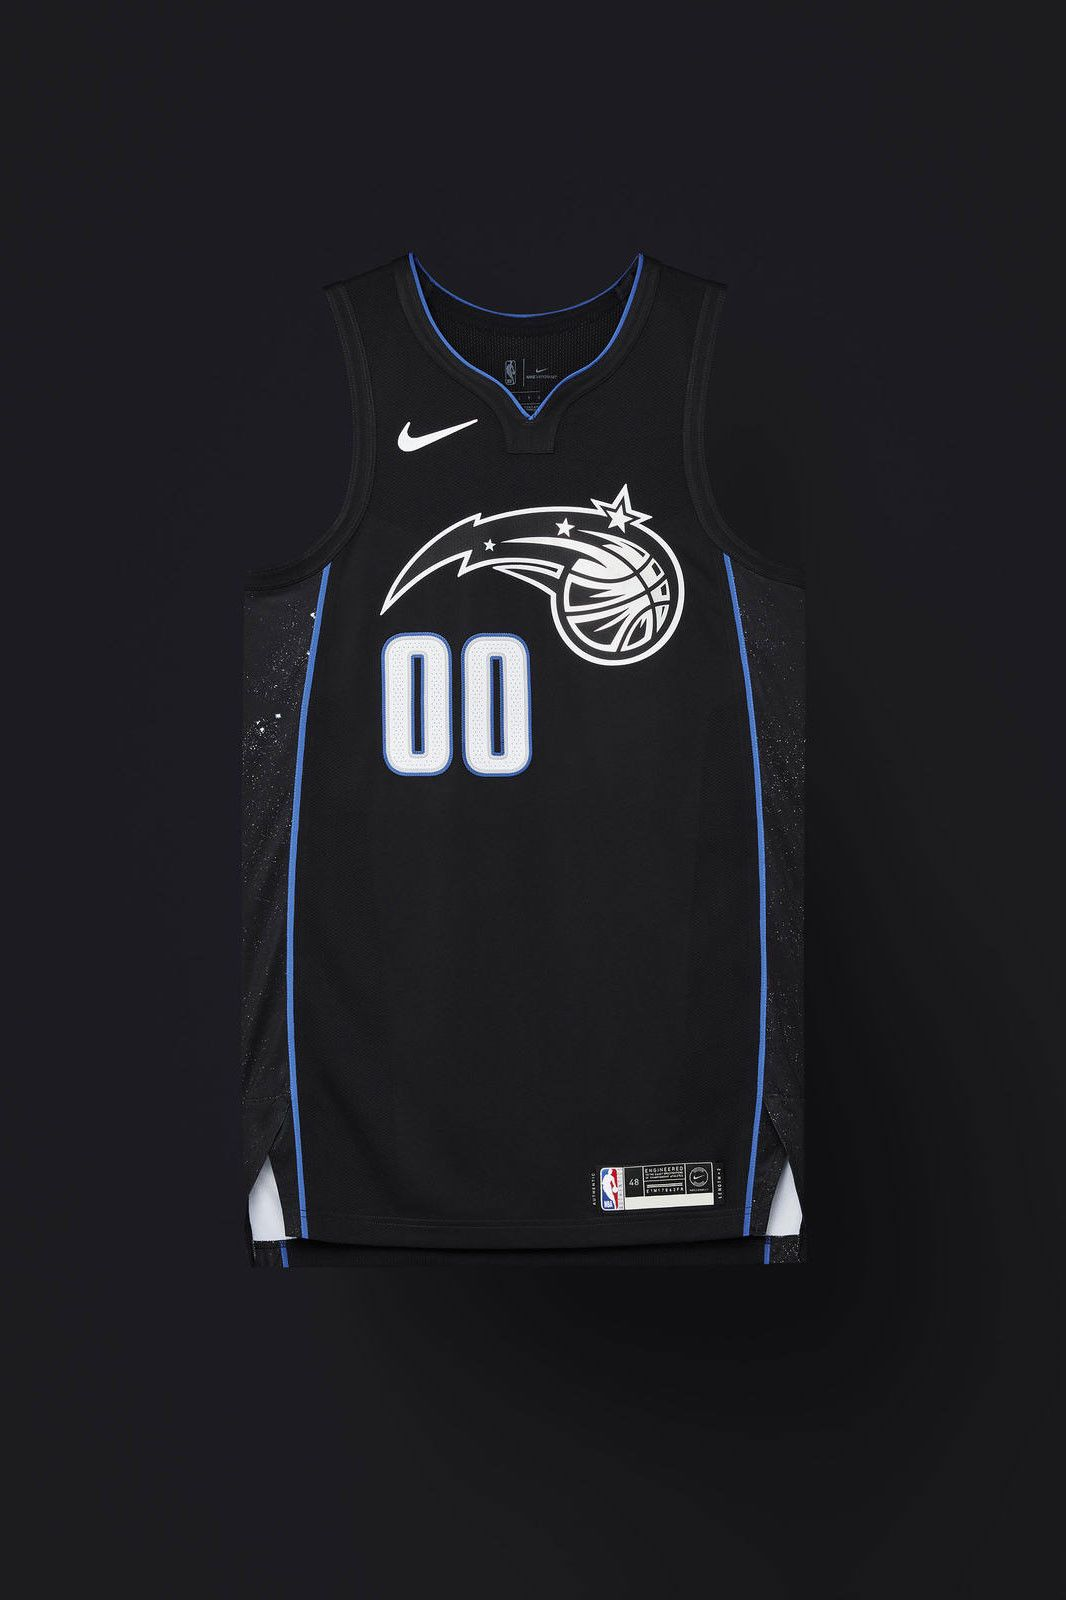 nike nba city edition uniforms 2018 2019 minnesota timberwolves chicago  bulls orlando magic charlotte hornets brooklyn nets philadelphia 76ers  denver ... b716a8b07